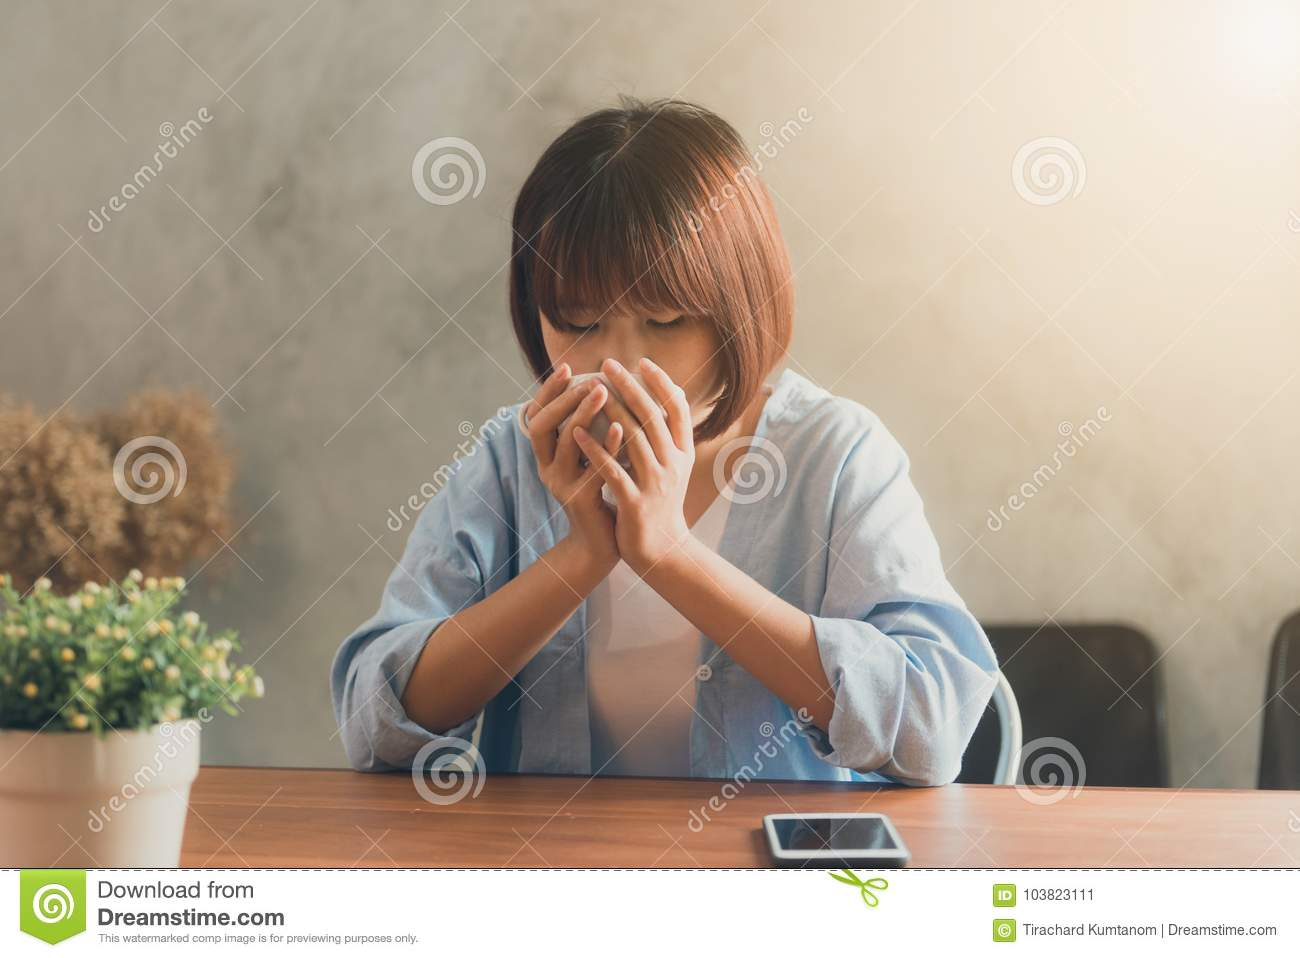 Young woman sitting in coffee shop at wooden table, drinking coffee and using smartphone.